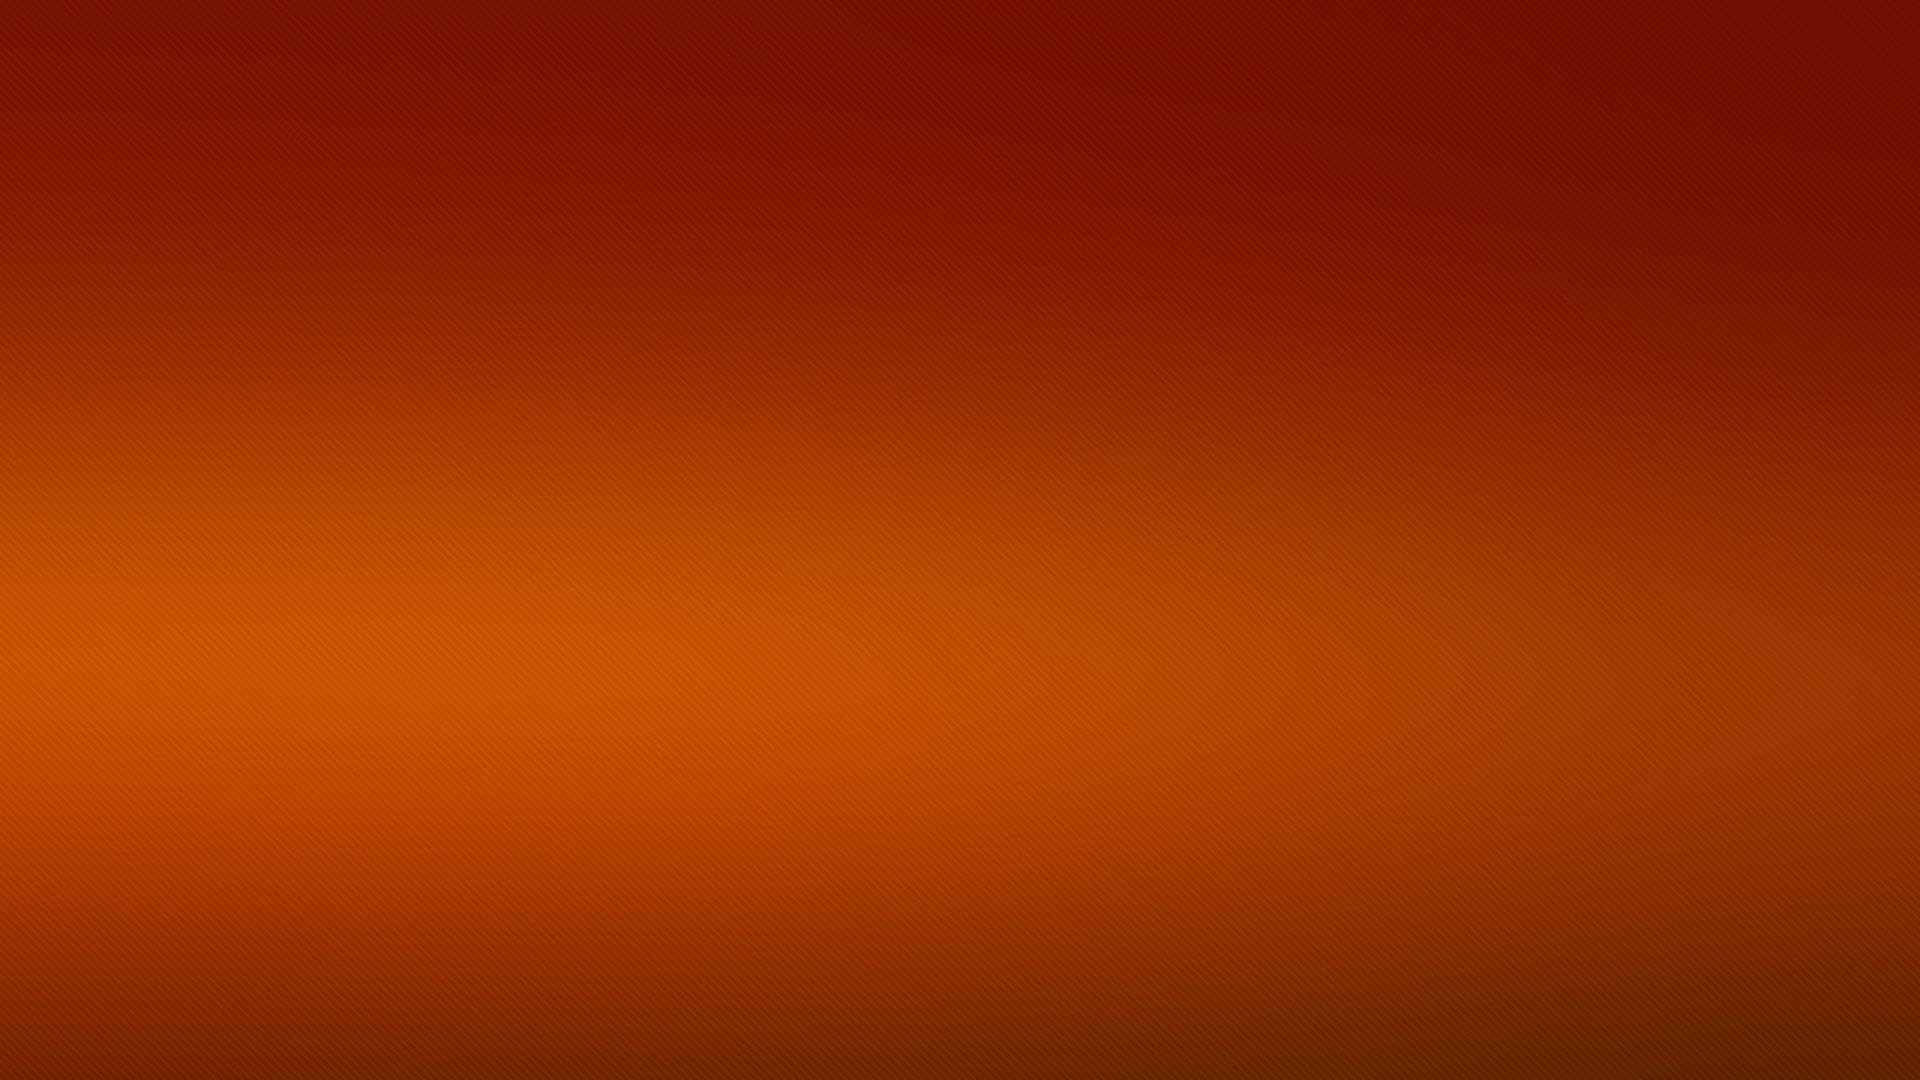 Bright Solid Color Wallpaper